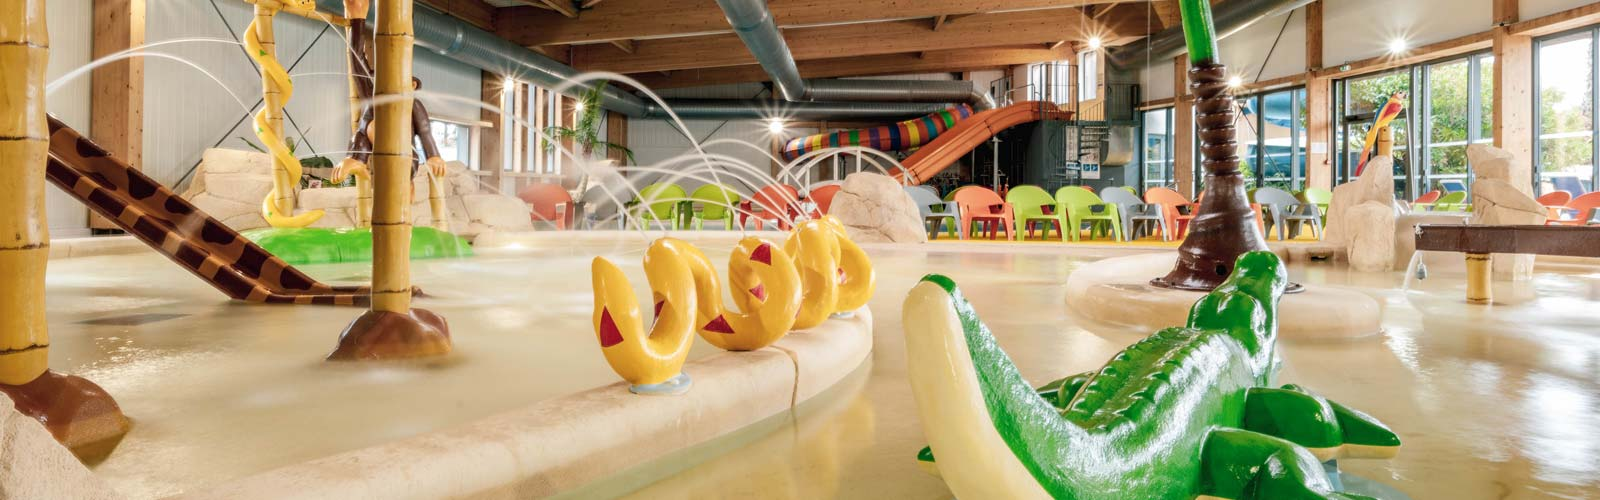 Indoor water park at Le Fief campsite in Saint-Brevin